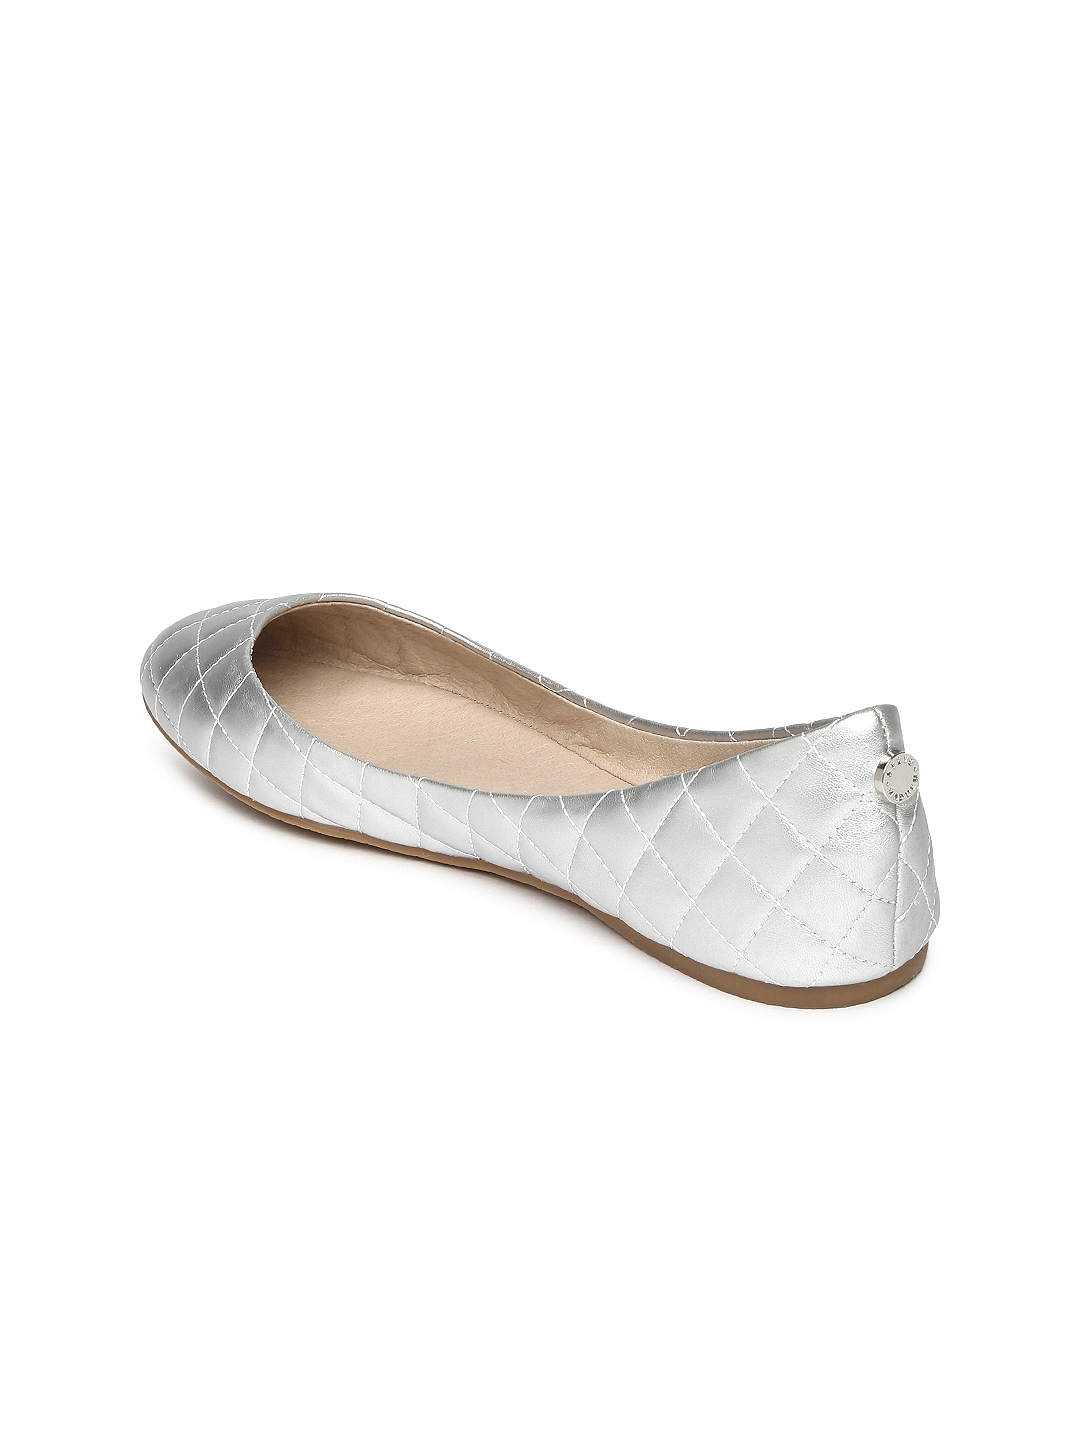 For cleaning methods, see our guide How to Clean Ballet Flats. Although these shoes are not for ballet, the outer materials will use the same cleaning methods. Although these shoes are not for ballet, the outer materials will use the same cleaning methods.